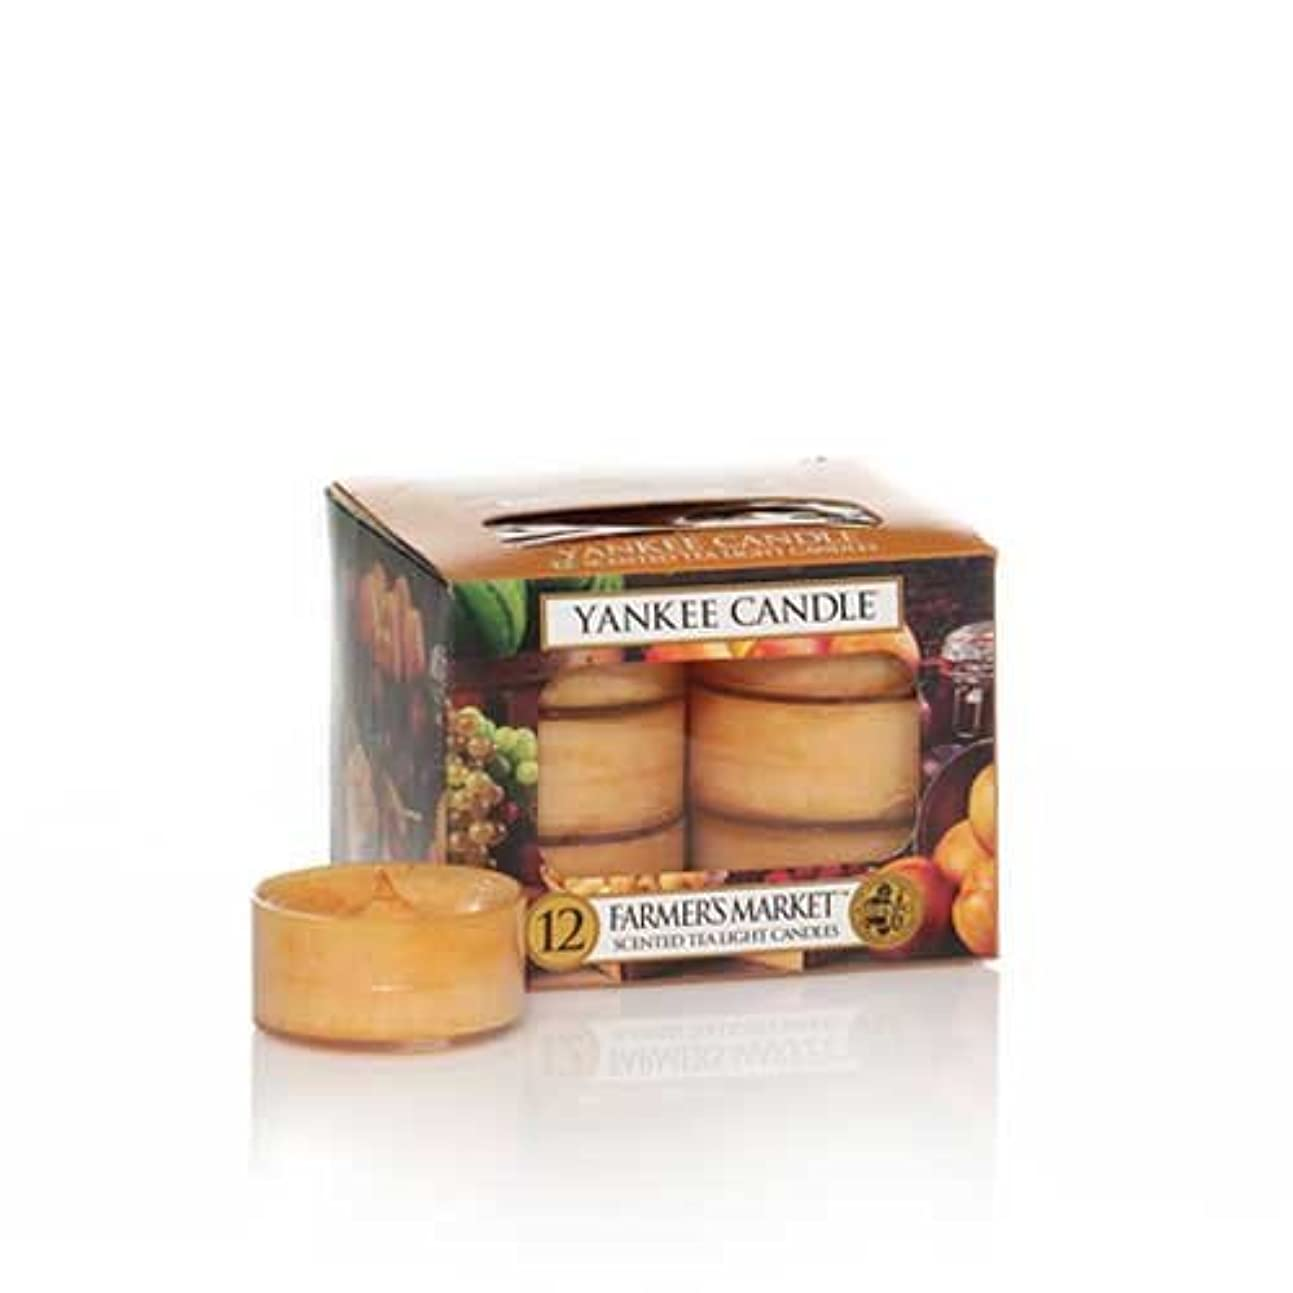 必要会計焦がすYankee Candle Farmer 's Market, Food & Spice香り Tea Light Candles オレンジ 1163587-YC